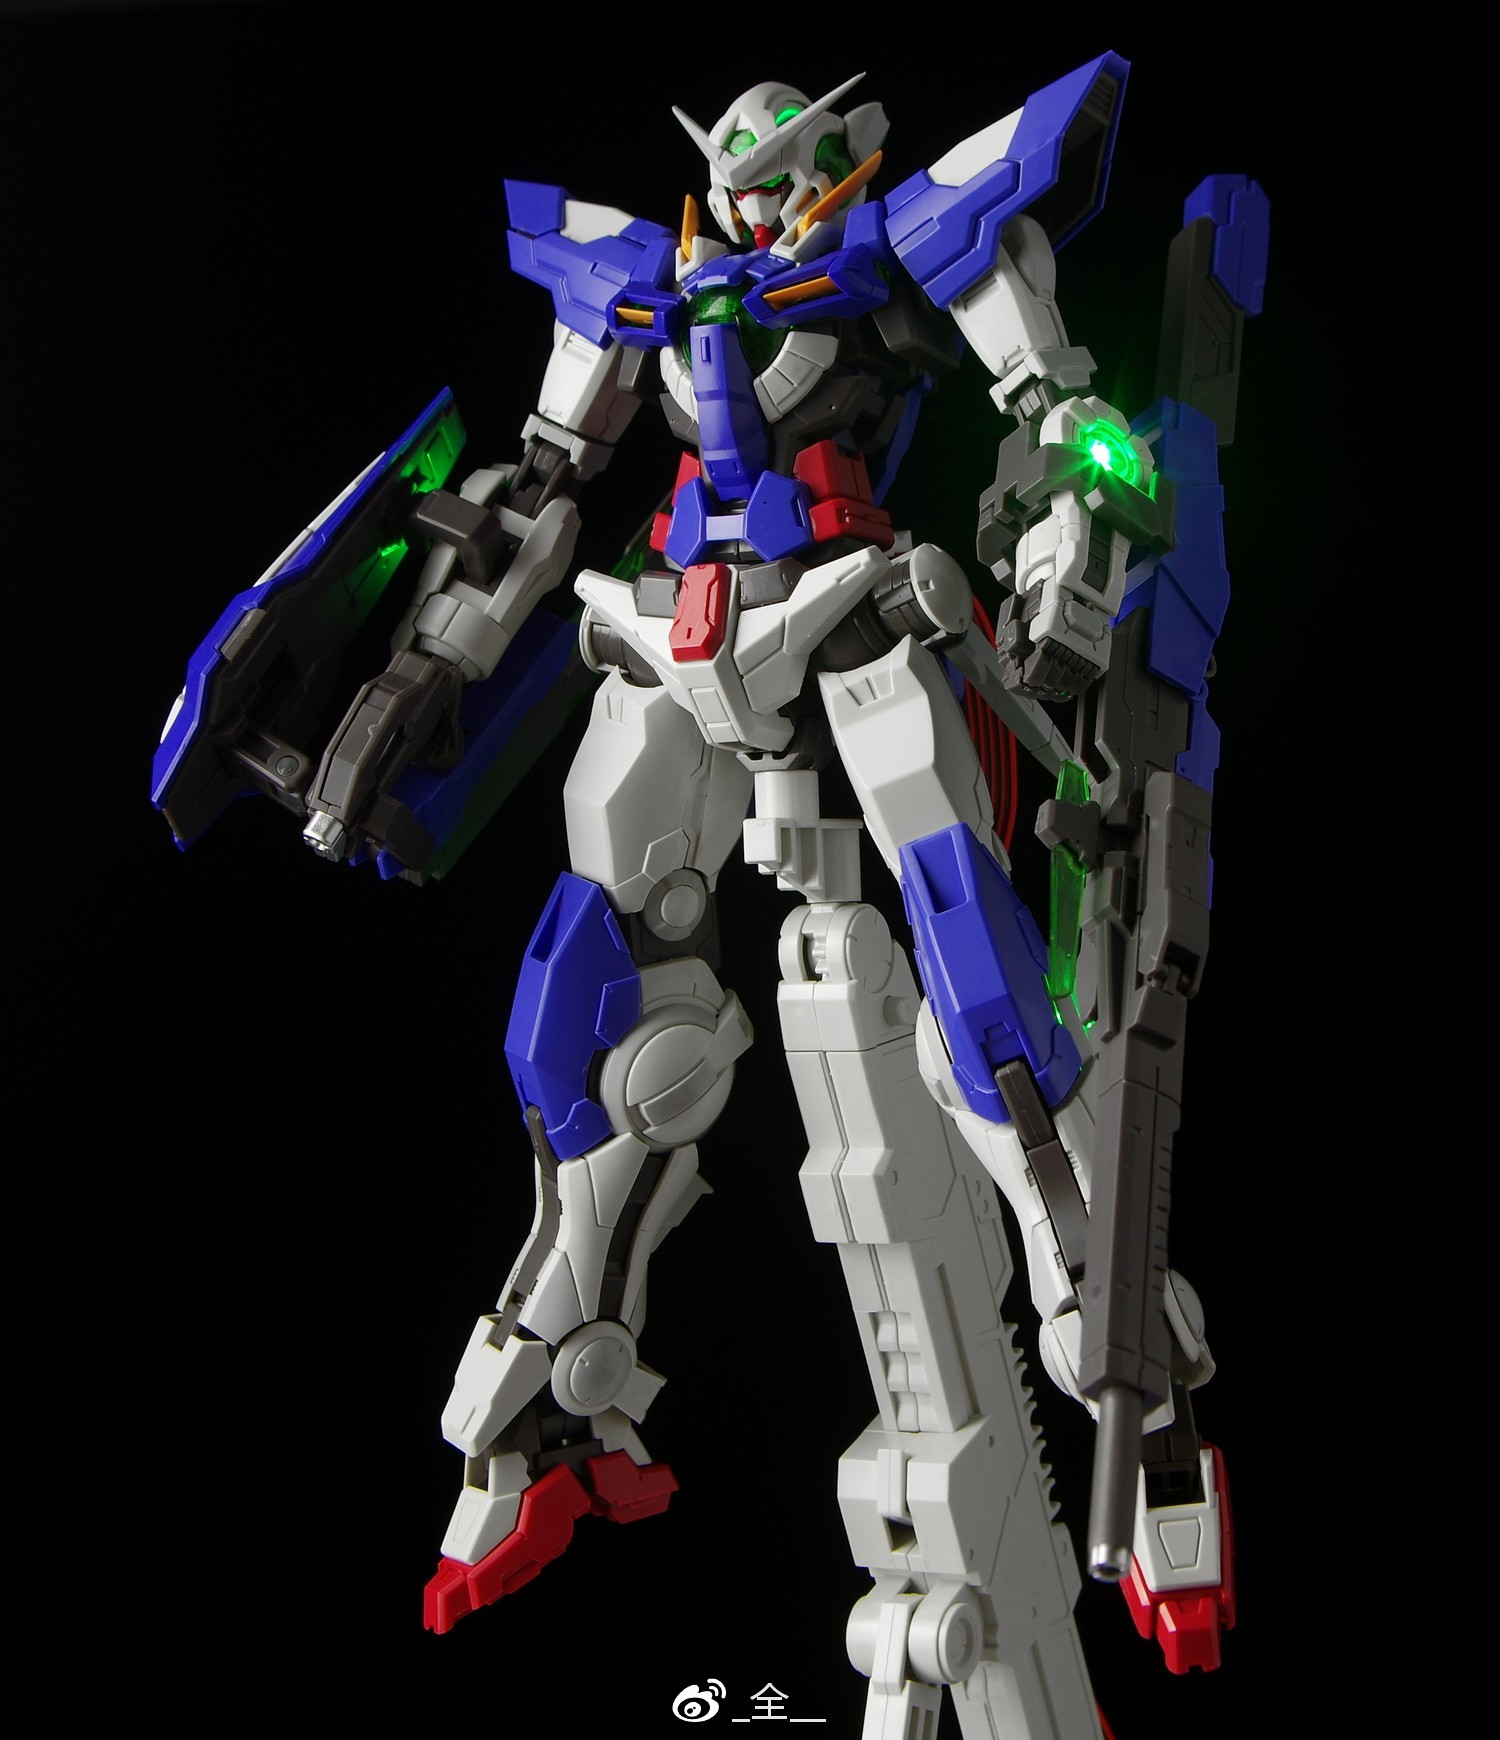 S269_mg_exia_led_hobby_star_inask_102.jpg